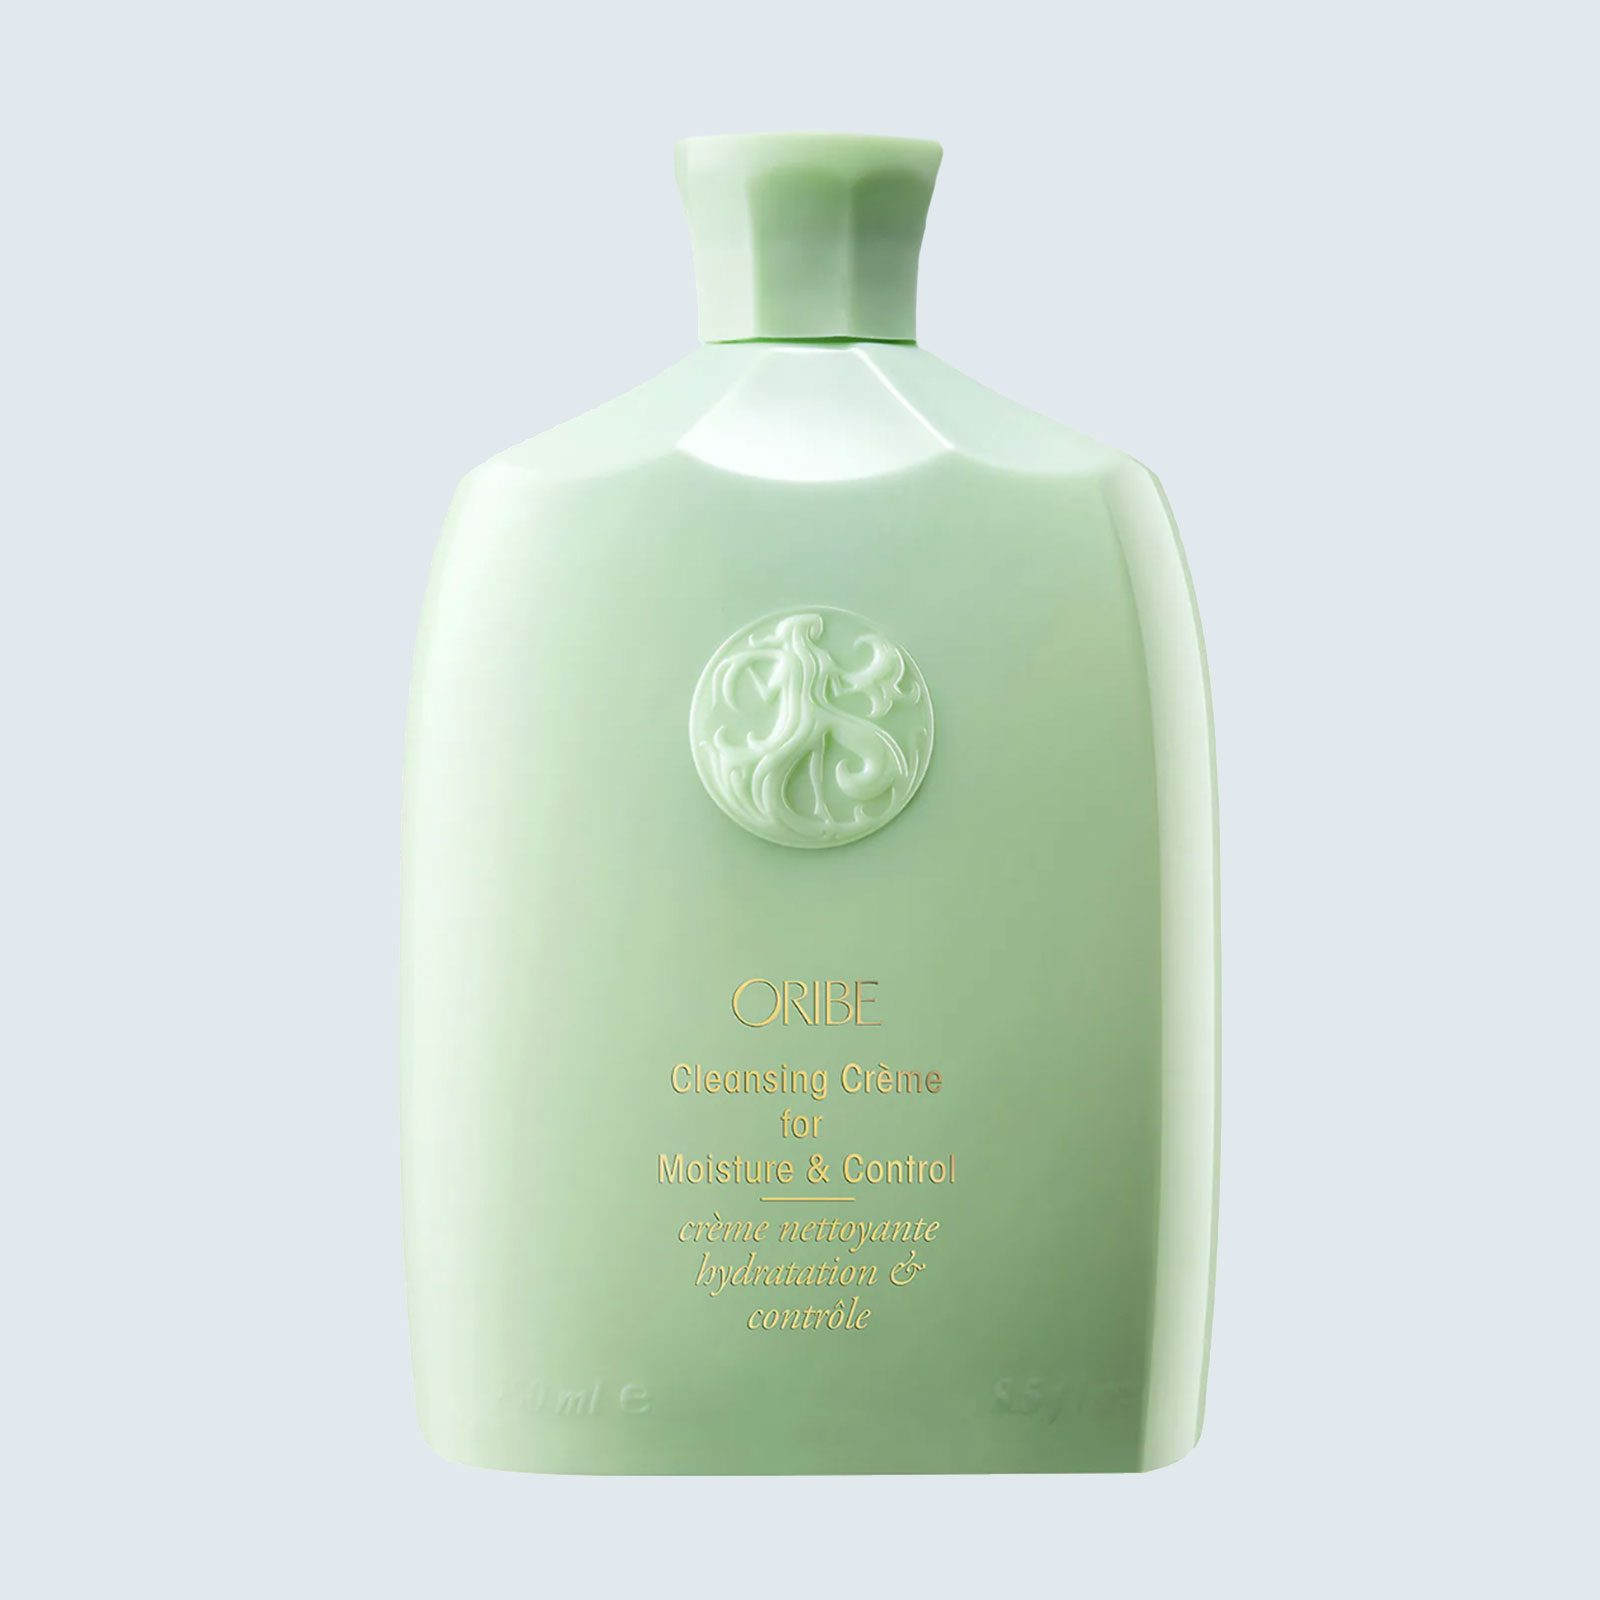 Best splurge shampoo for curly hair: Oribe Cleansing Creme for Moisture & Control